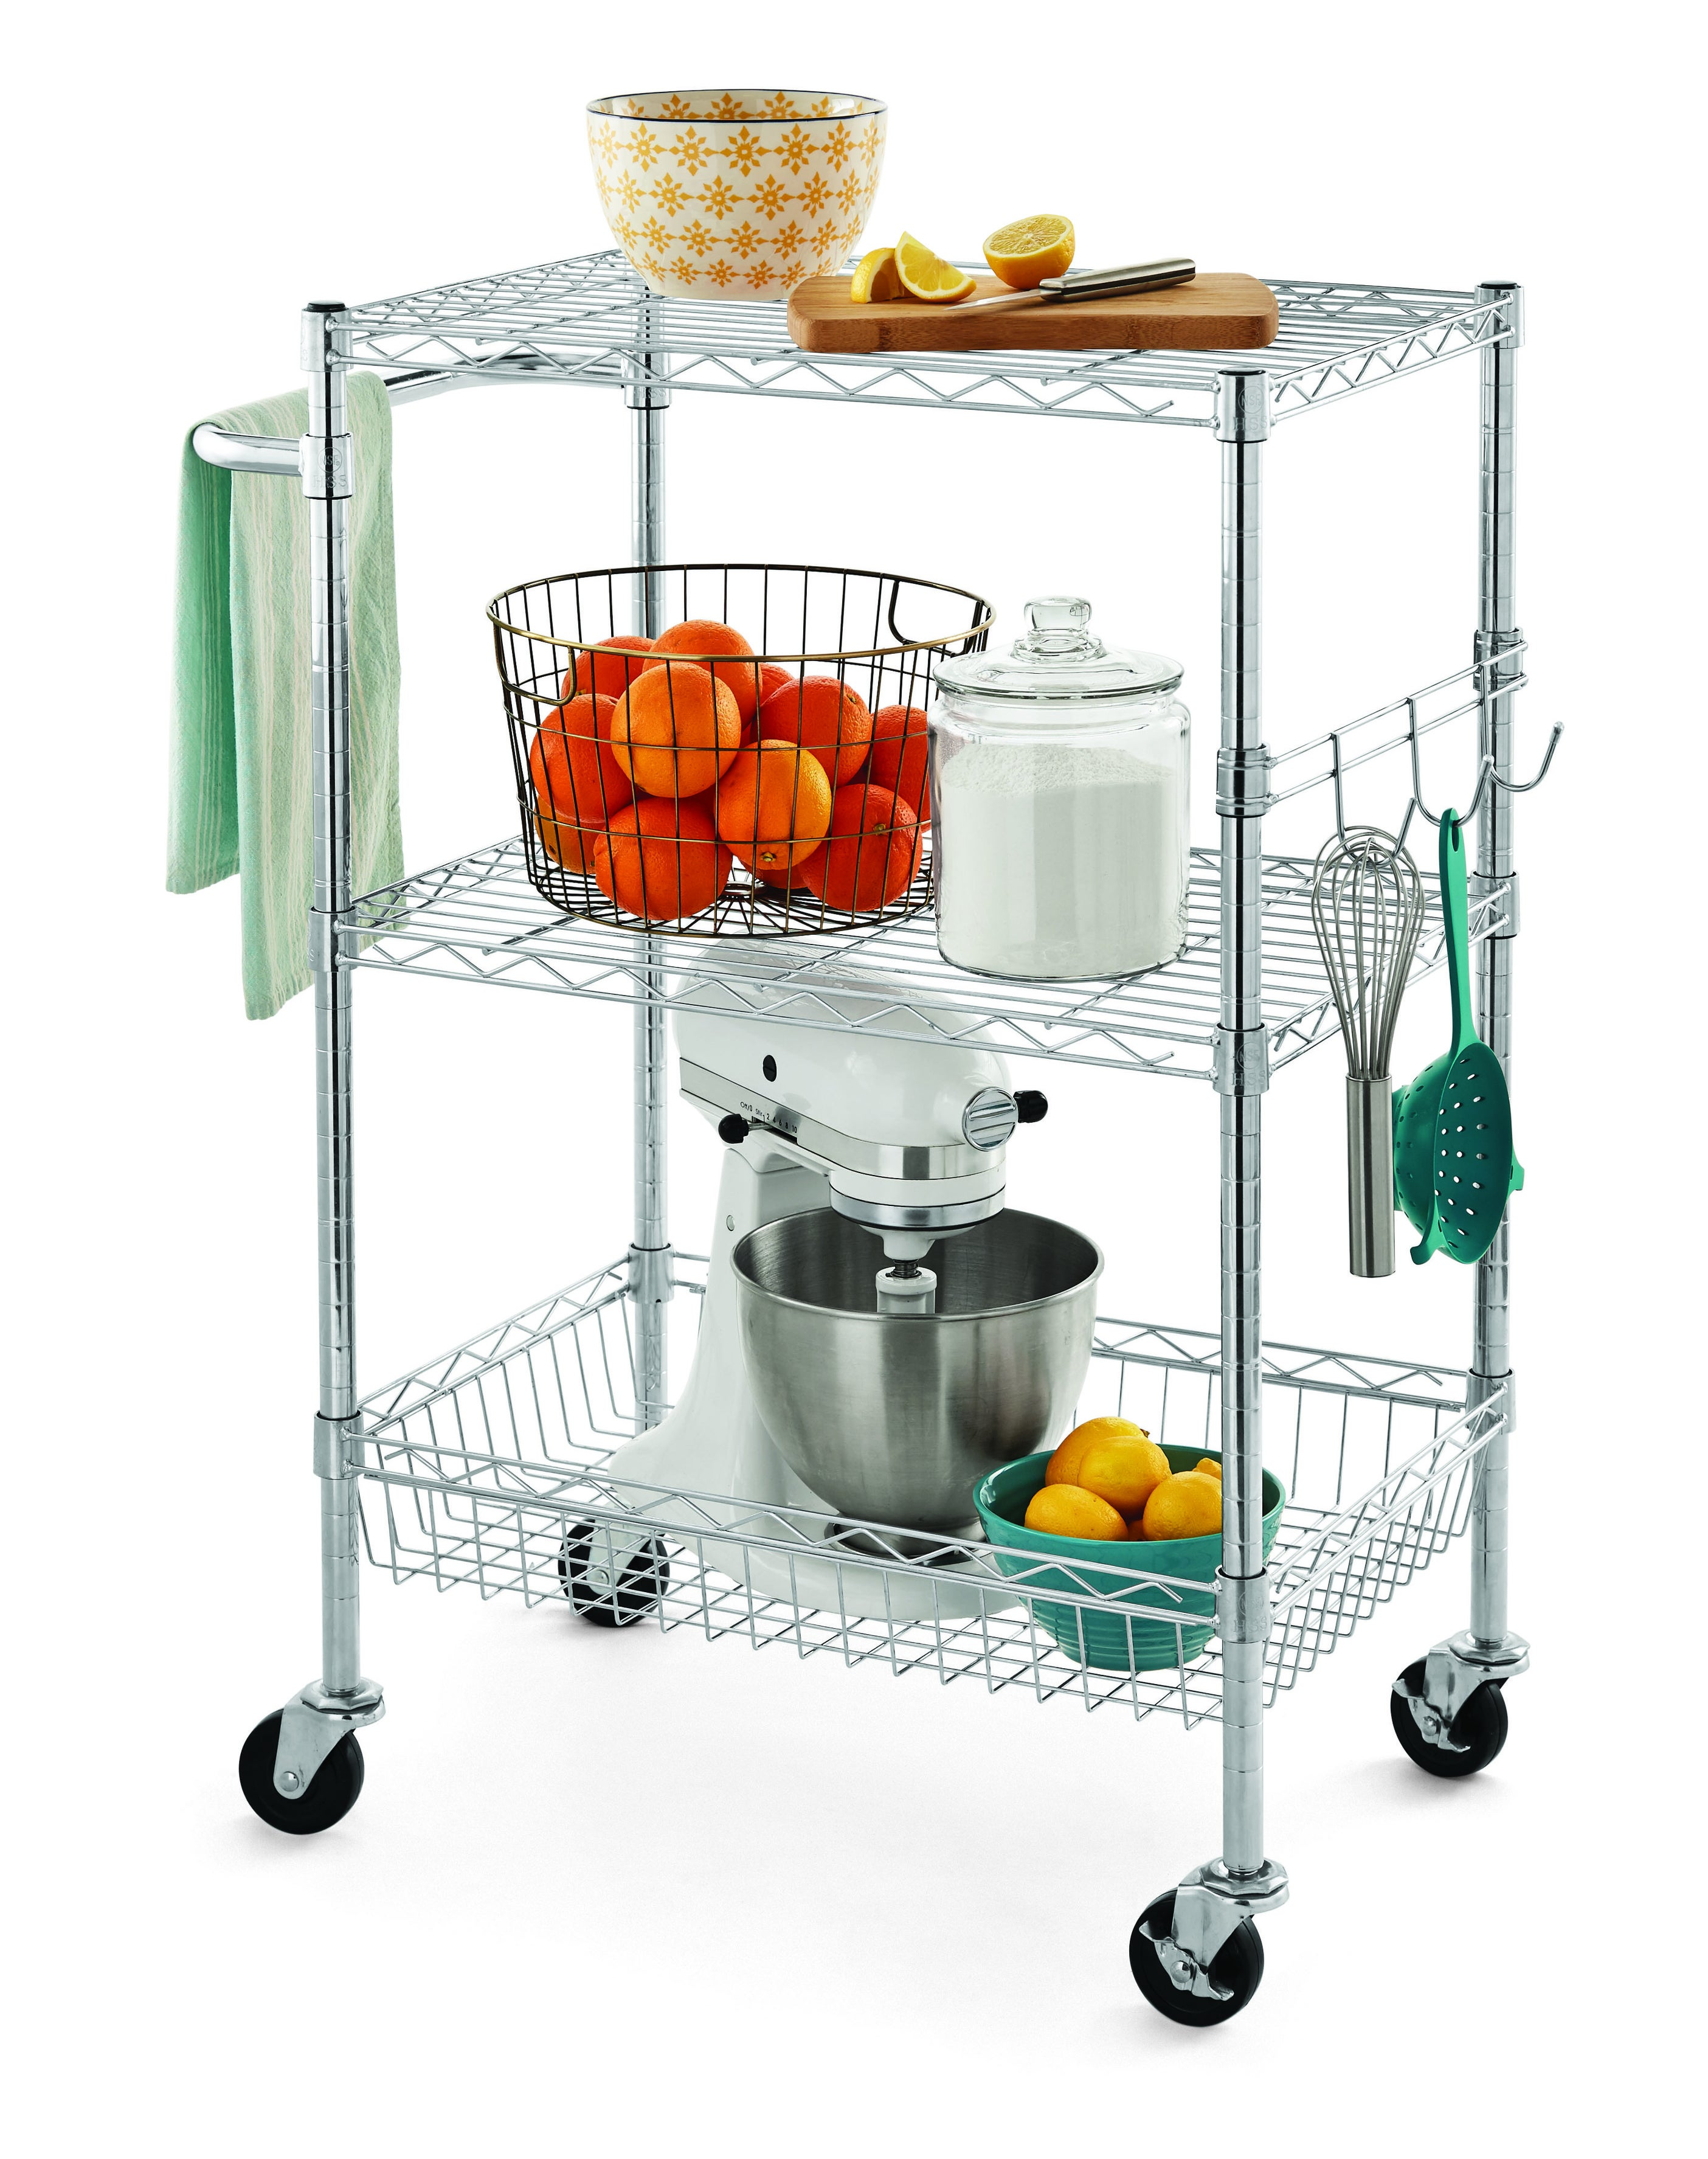 Steel rolling cart with kitchen tools on it